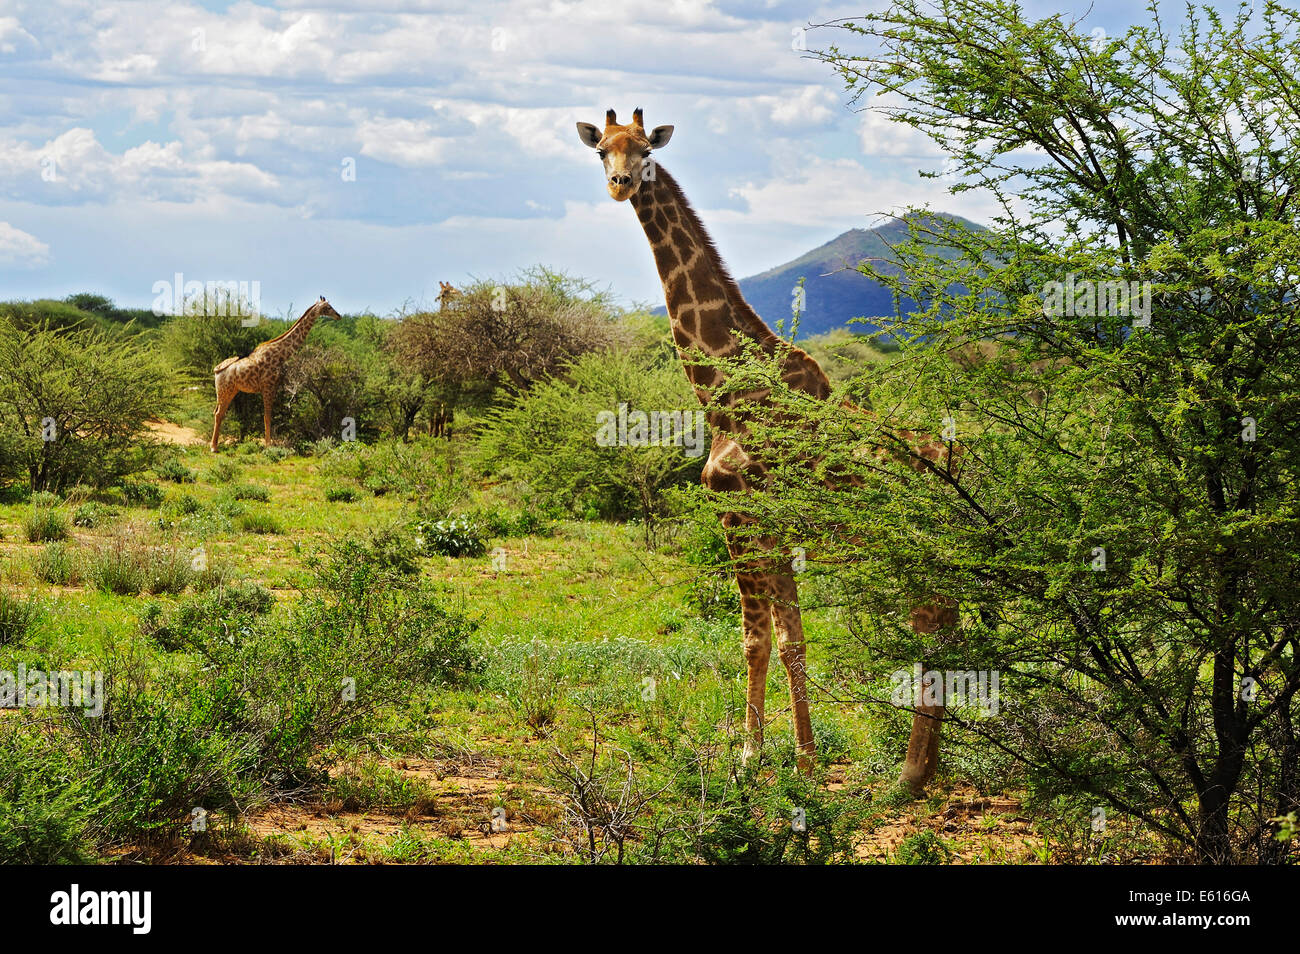 Savannah with giraffes (Giraffa camelopardalis) in Okahandja, Namibia - Stock Image